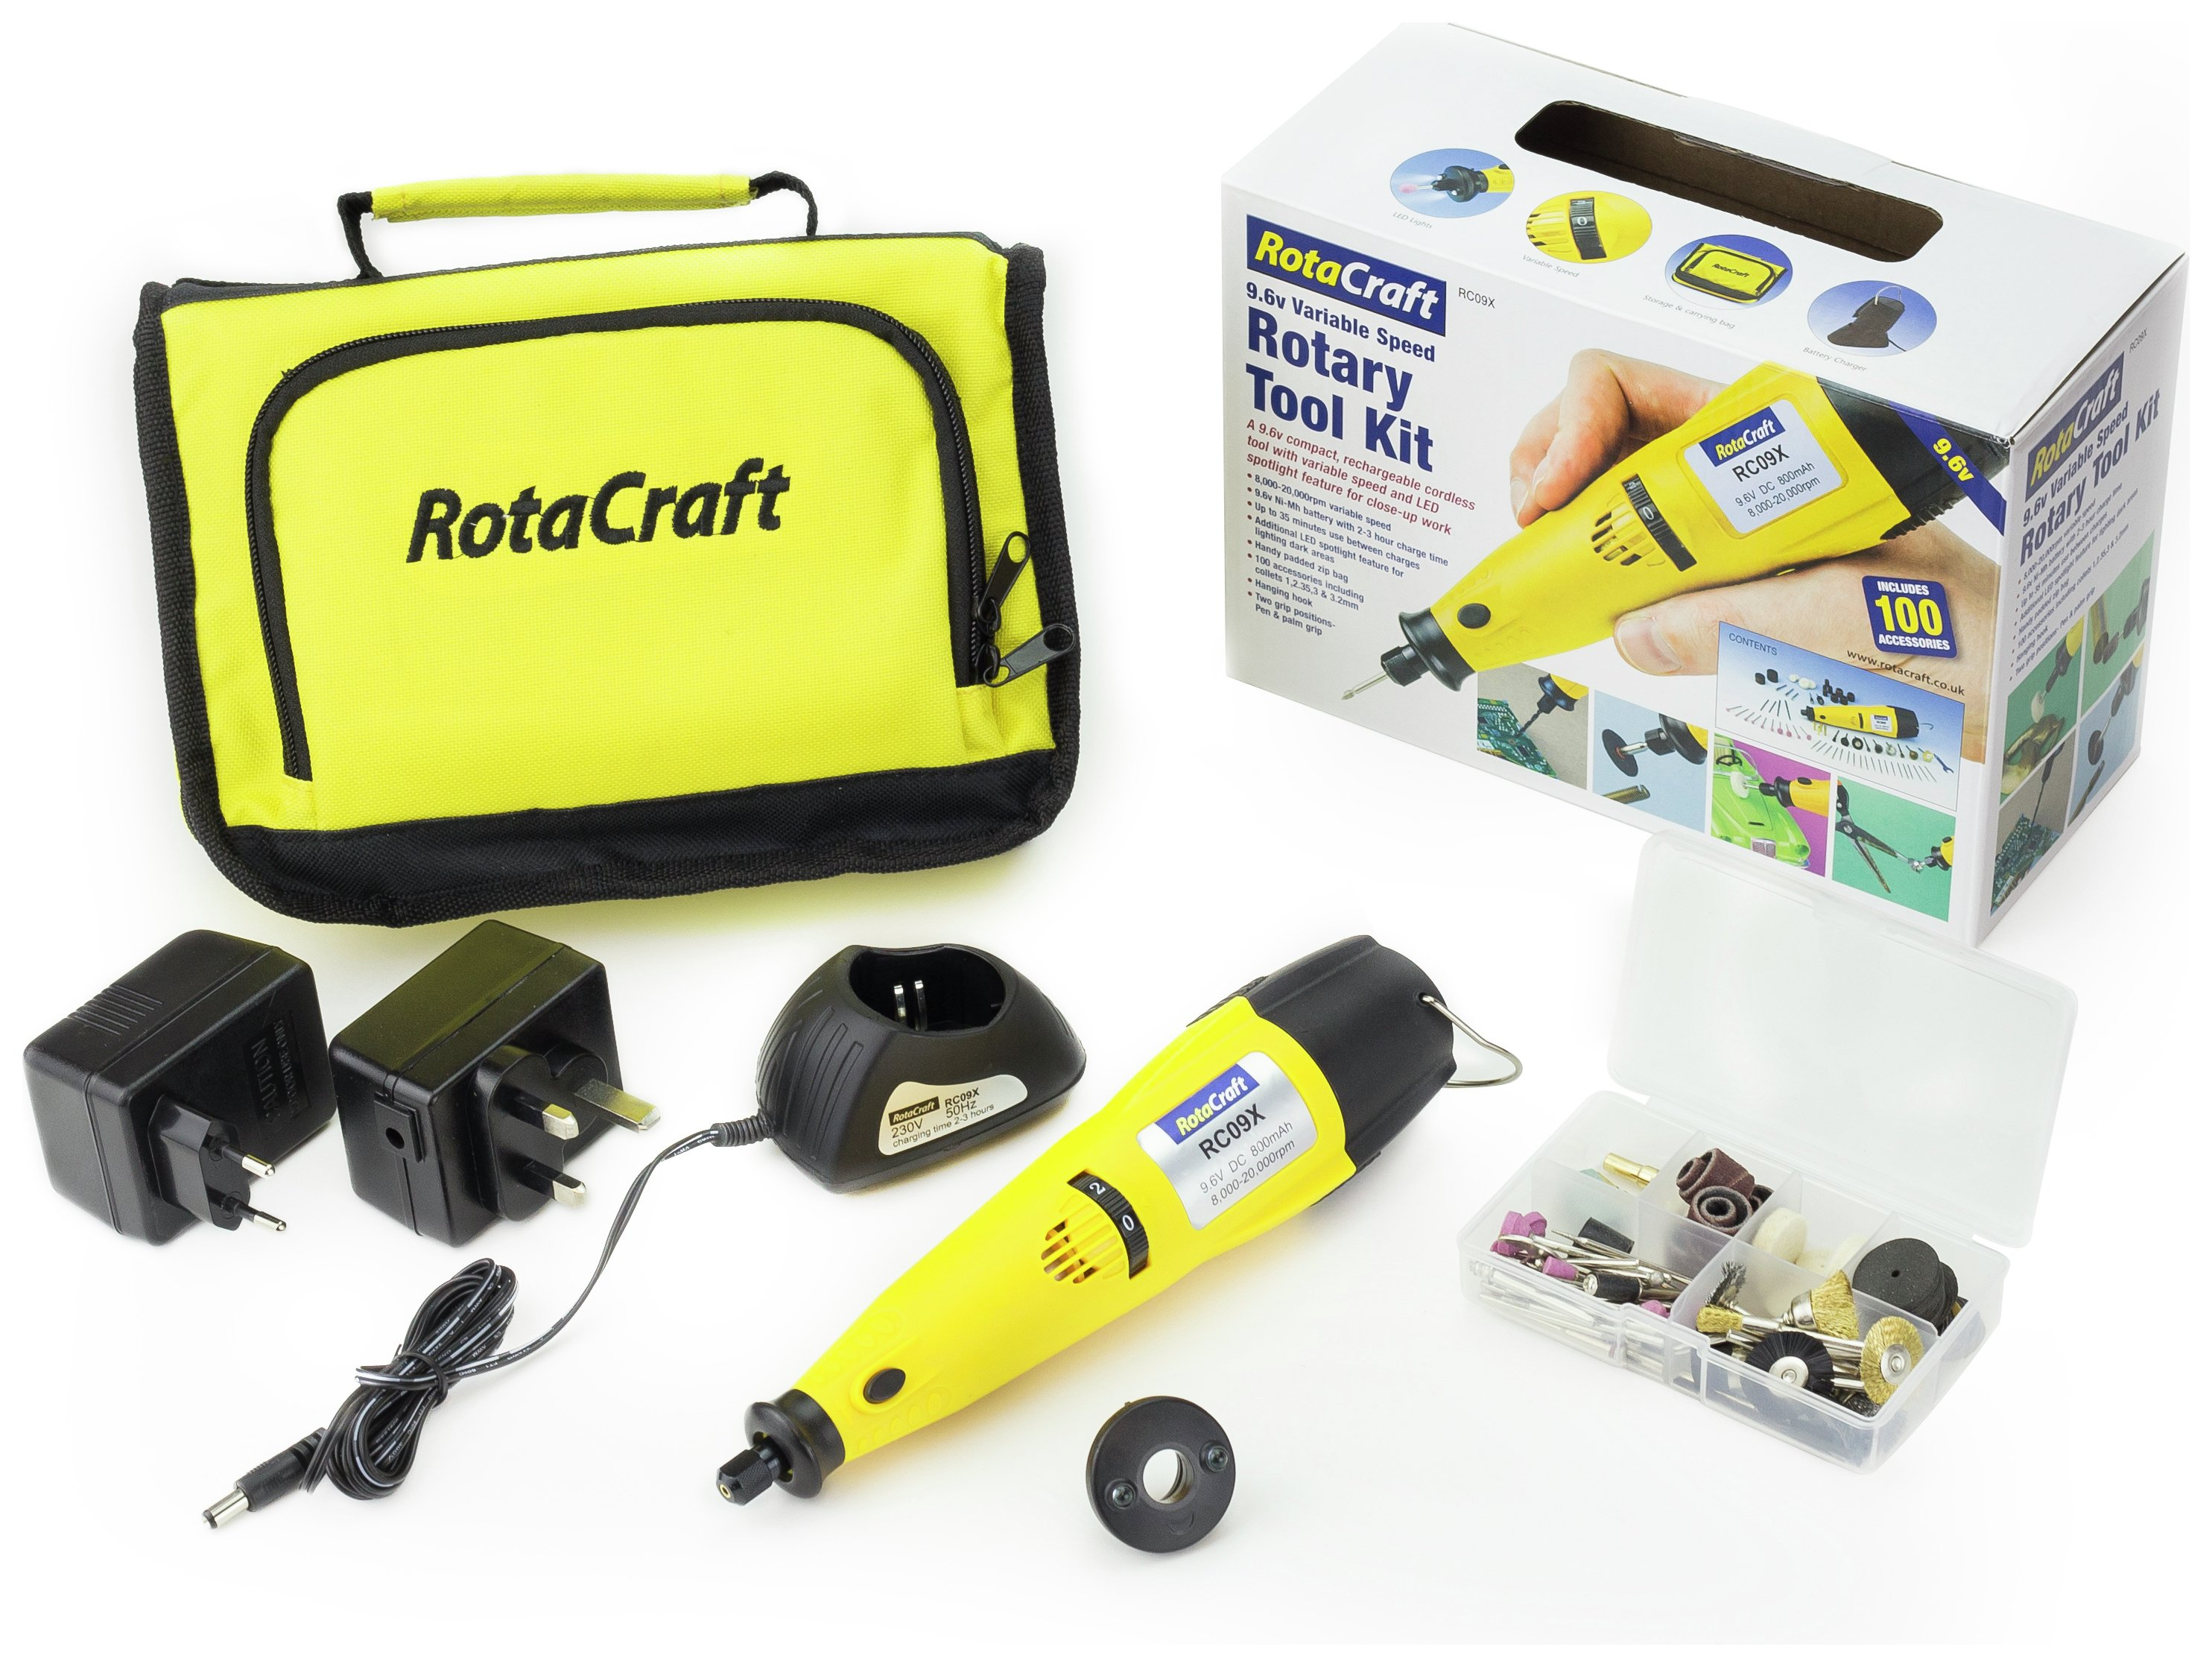 Rotacraft 9.6V Variable Speed Rotary Tool Kit. lowest price